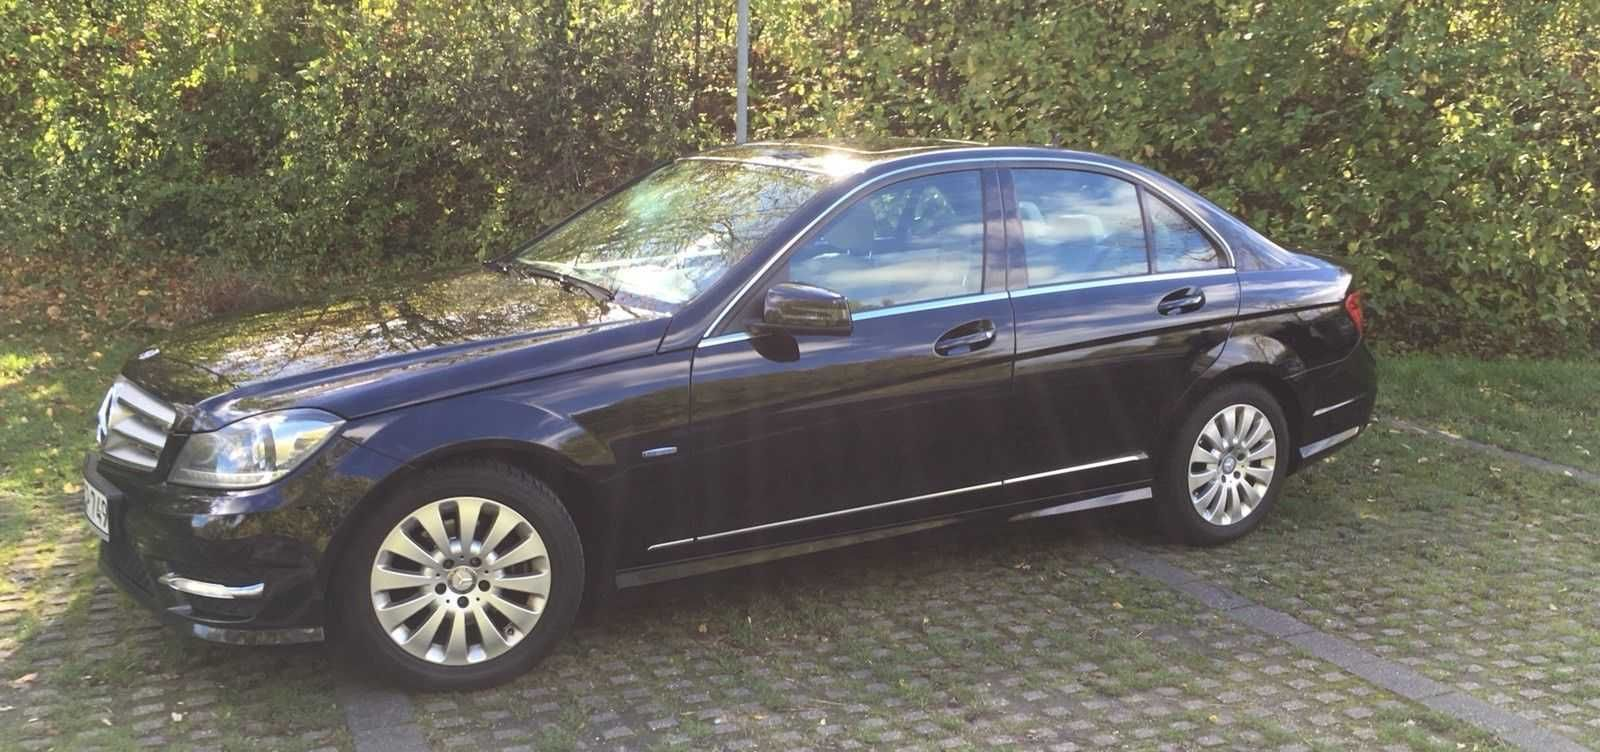 Mercedes-Benz C250 CDI AMG-line   Check more at https://0nlineshop.de/mercedes-benz-c250-cdi-amg-line/